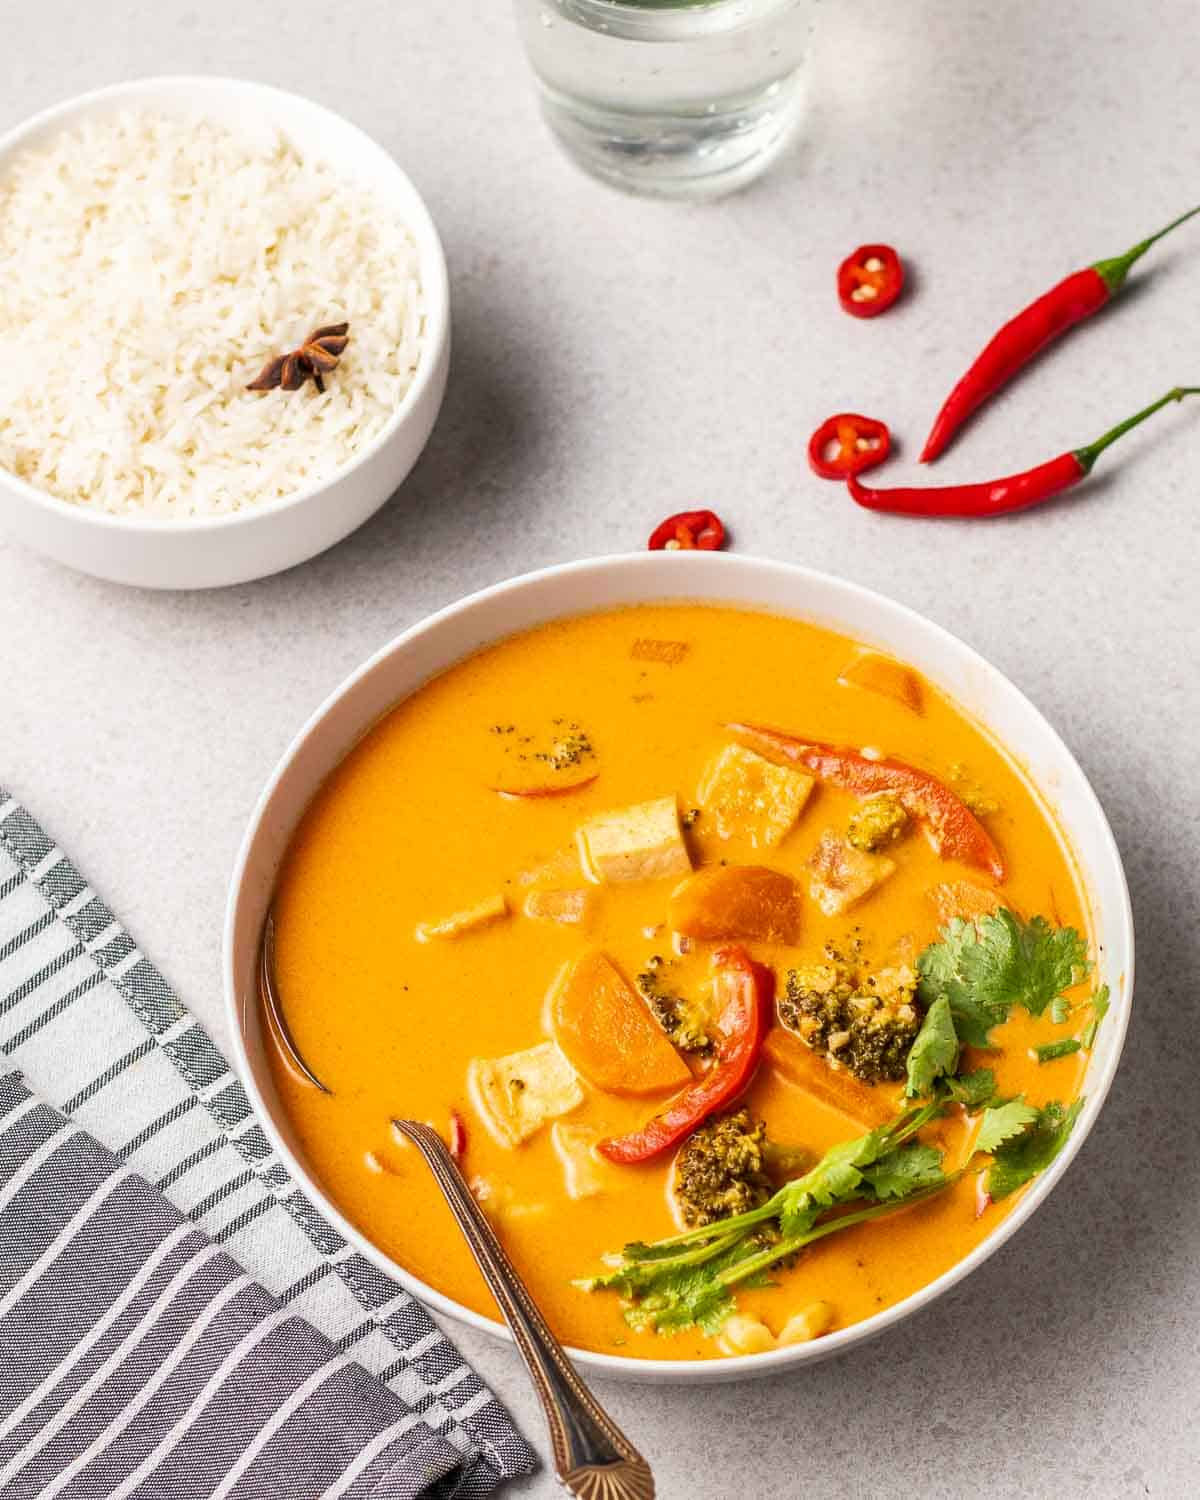 Vegan Thai red curry served in a white bowl with a spoon.